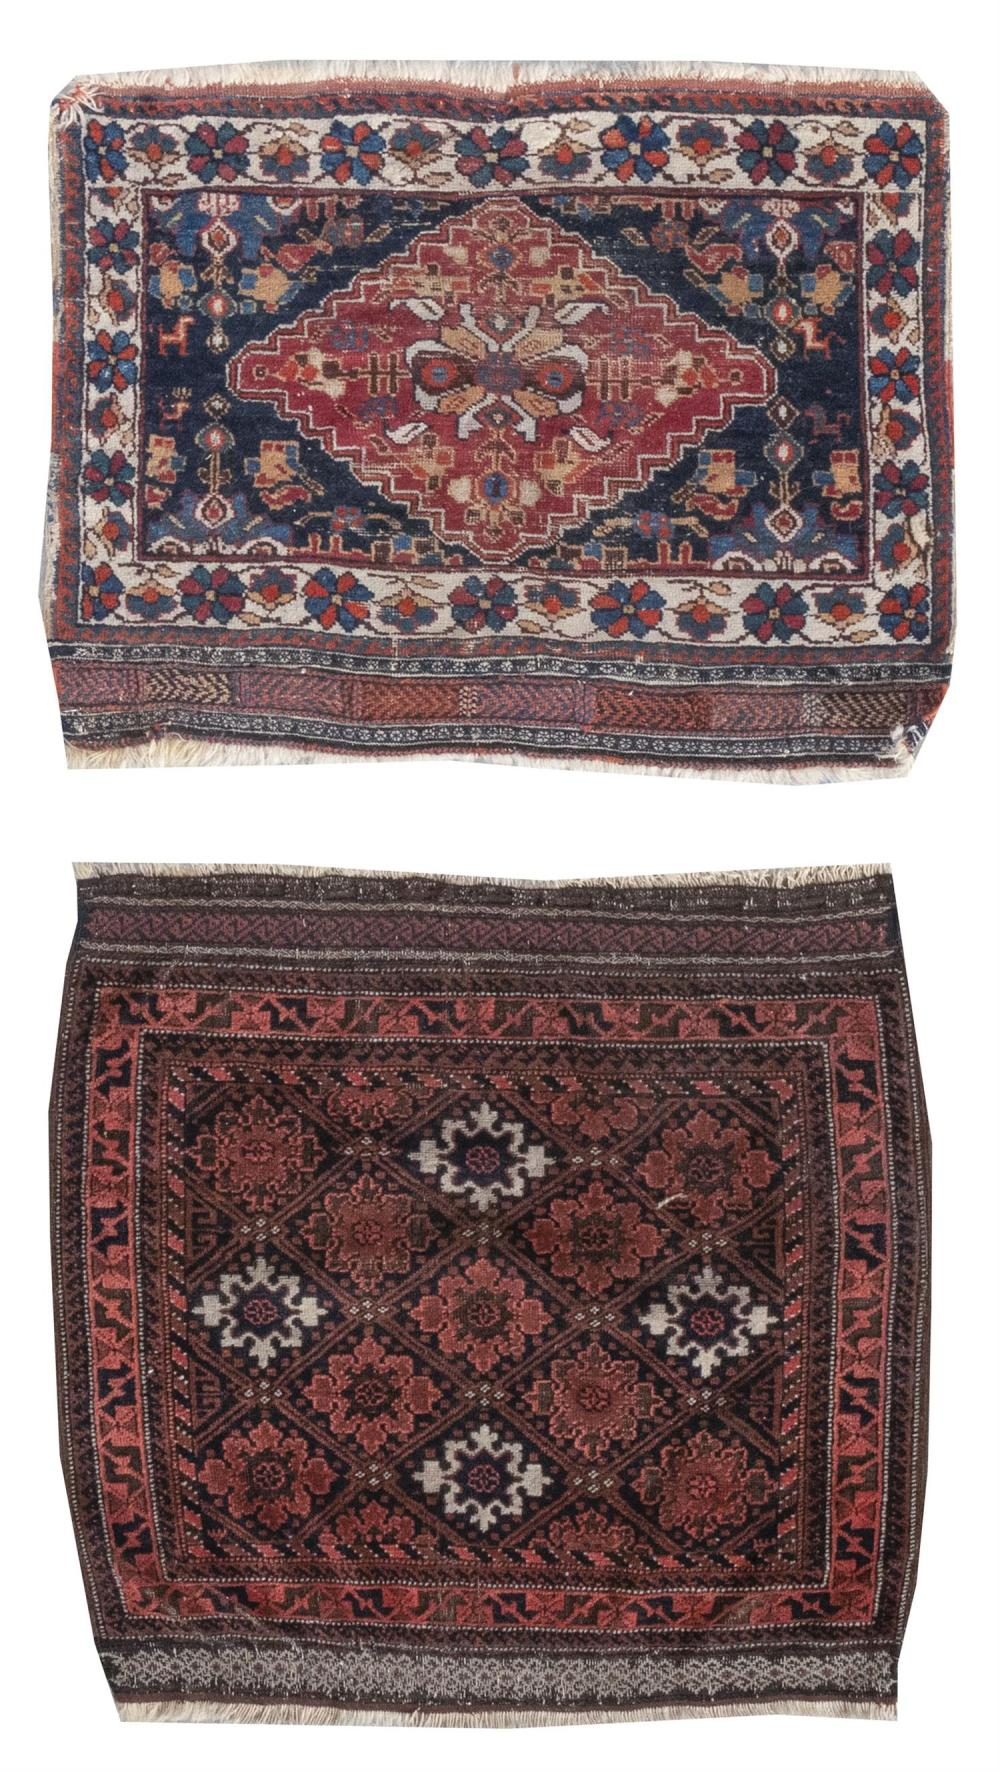 """TWO ORIENTAL MATS: SOUTH PERSIAN STORAGE BAGFACE AND A BELOUCH 2'1"""" x 2'7"""" and 2'7"""" x 2'9"""" South Persian with red central medallion"""